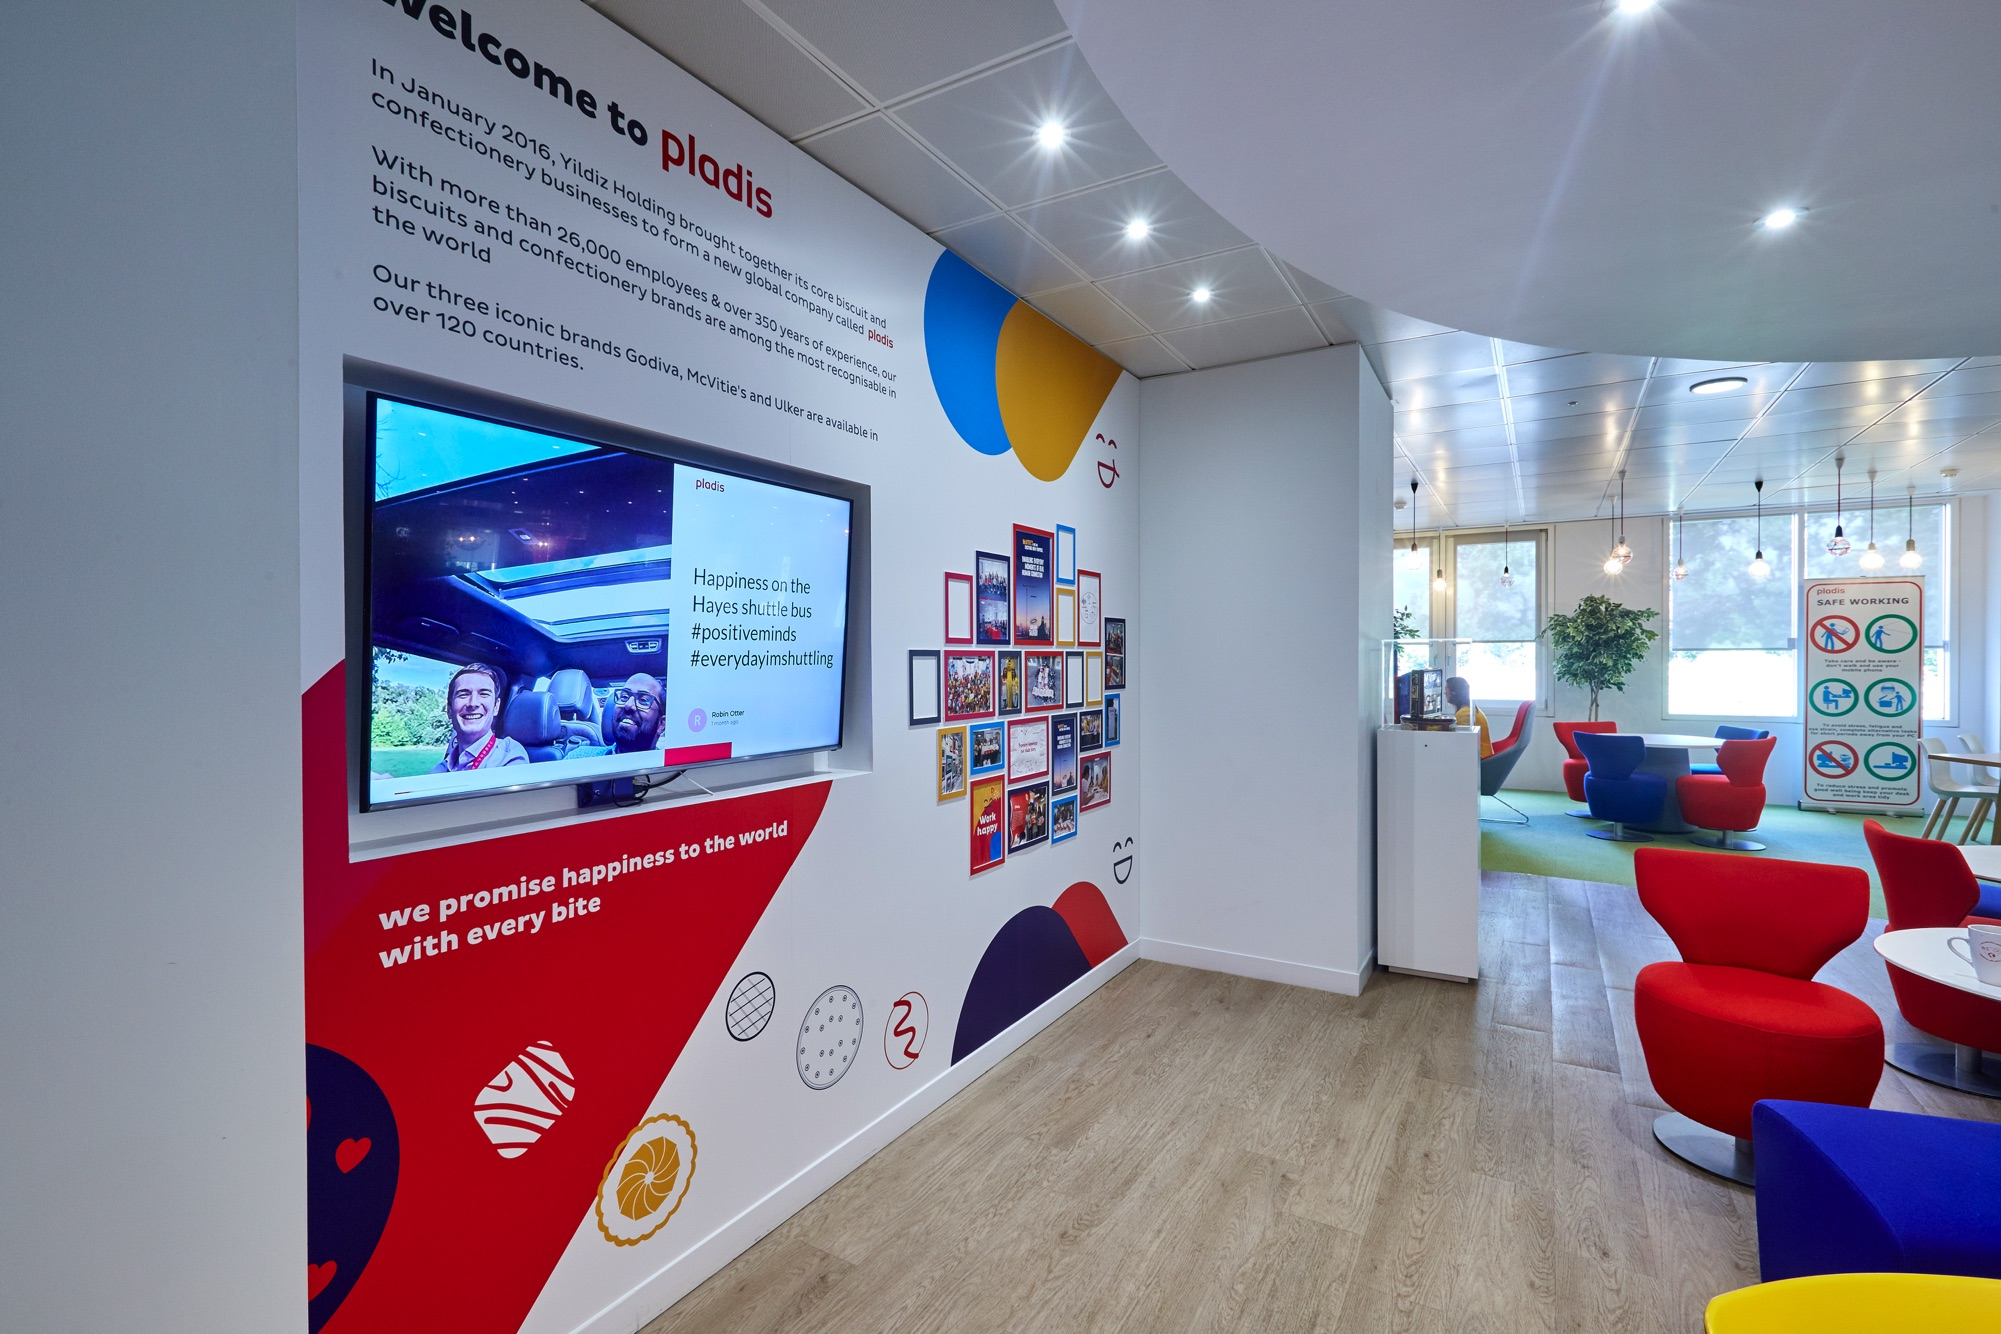 Five ways organizations can use digital signage to create informed and engaged workplace cultures